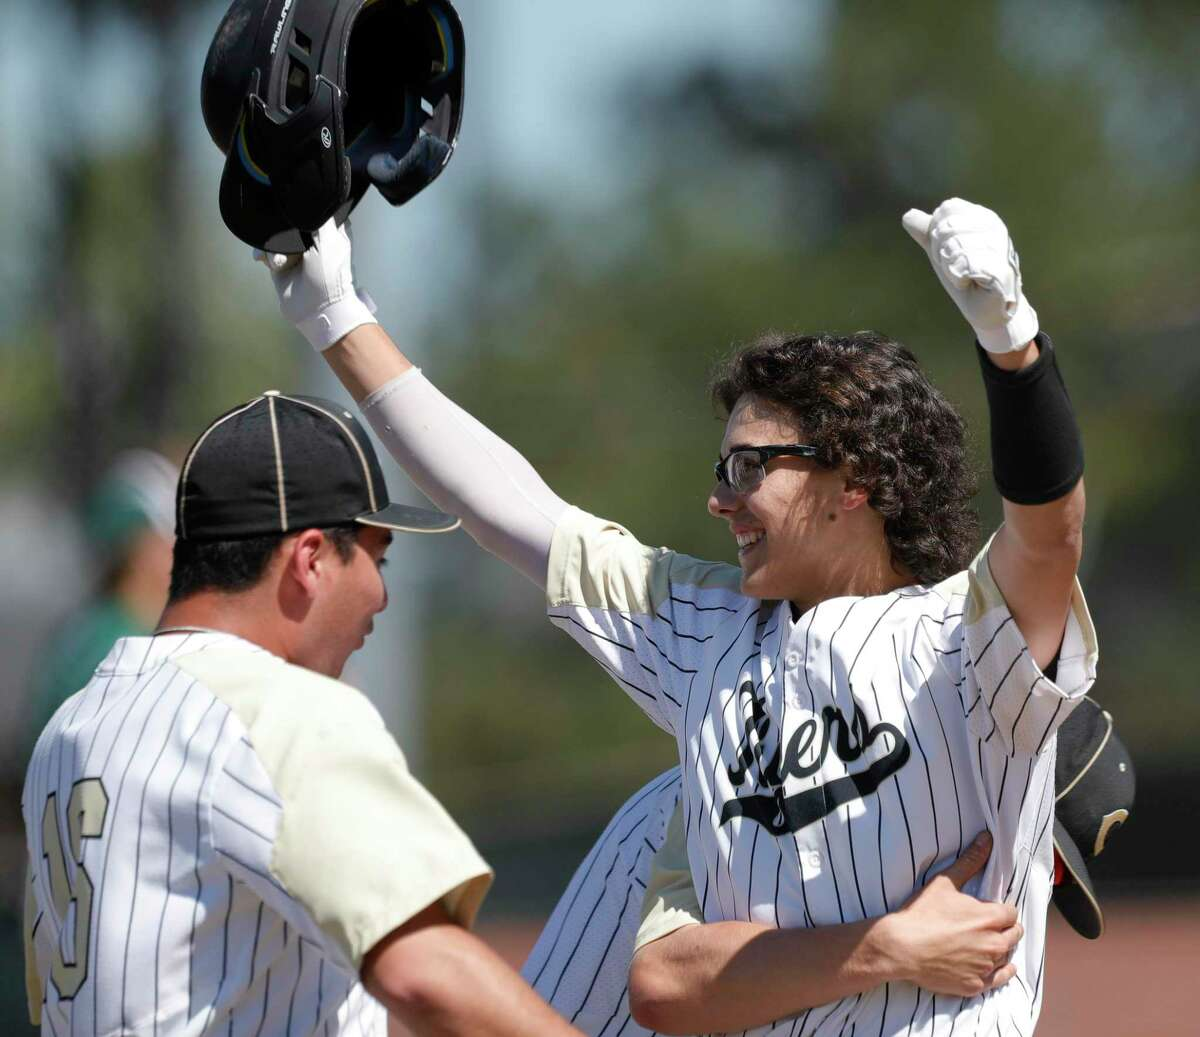 Conroe's Frankie Olivarez is a four-year letterman and a big spark plug for the team at the plate and in the field. He is one of four returners for the Tigers this season.